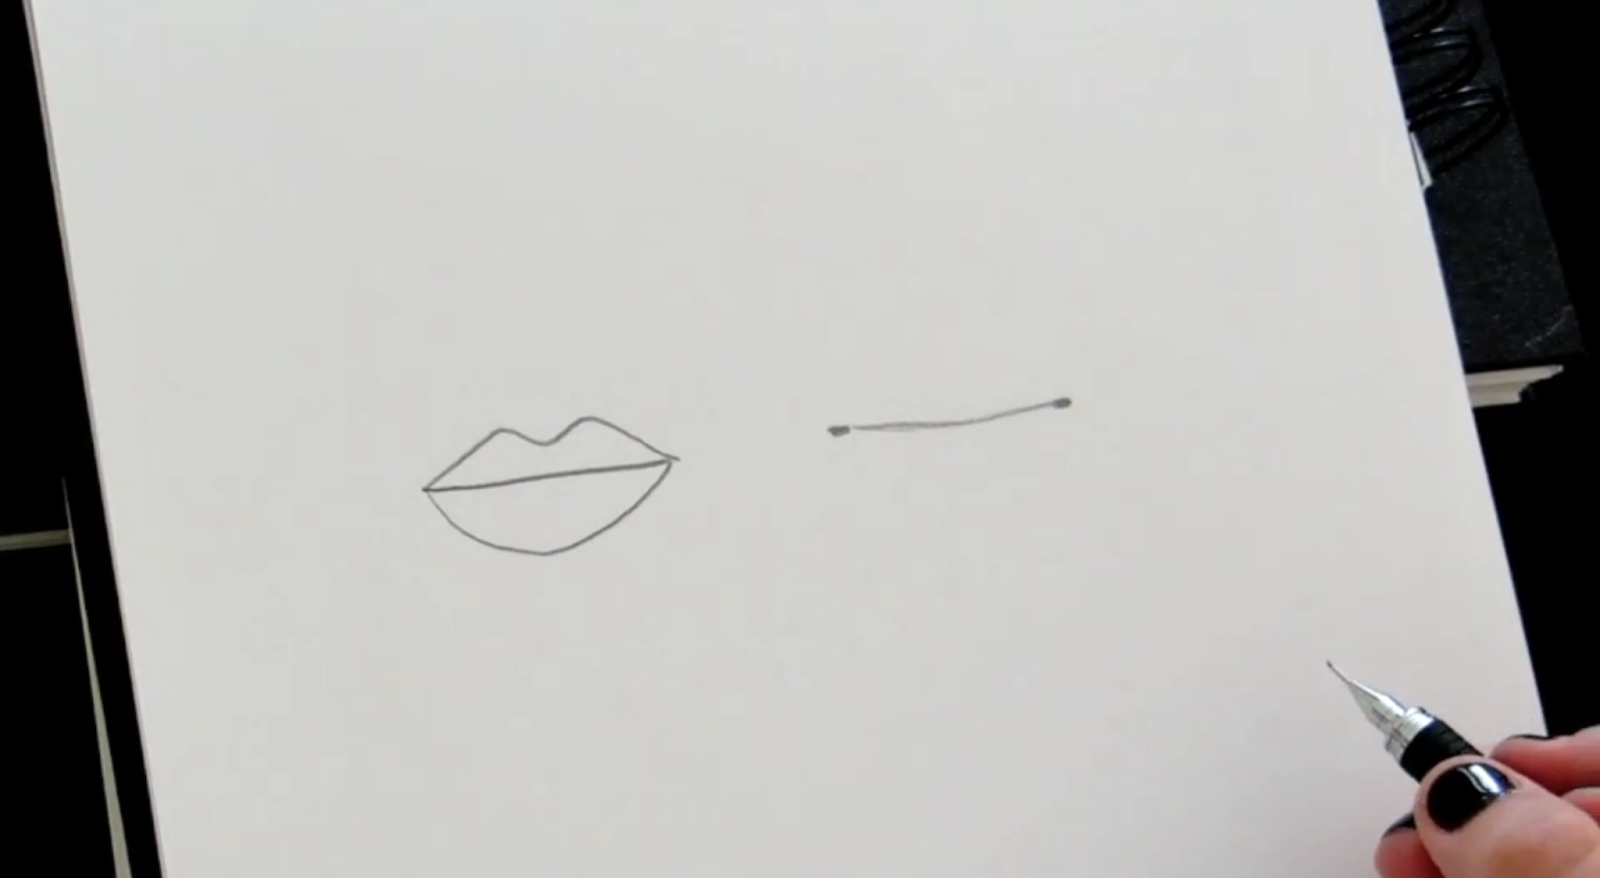 Start your lips sketch with a single line.